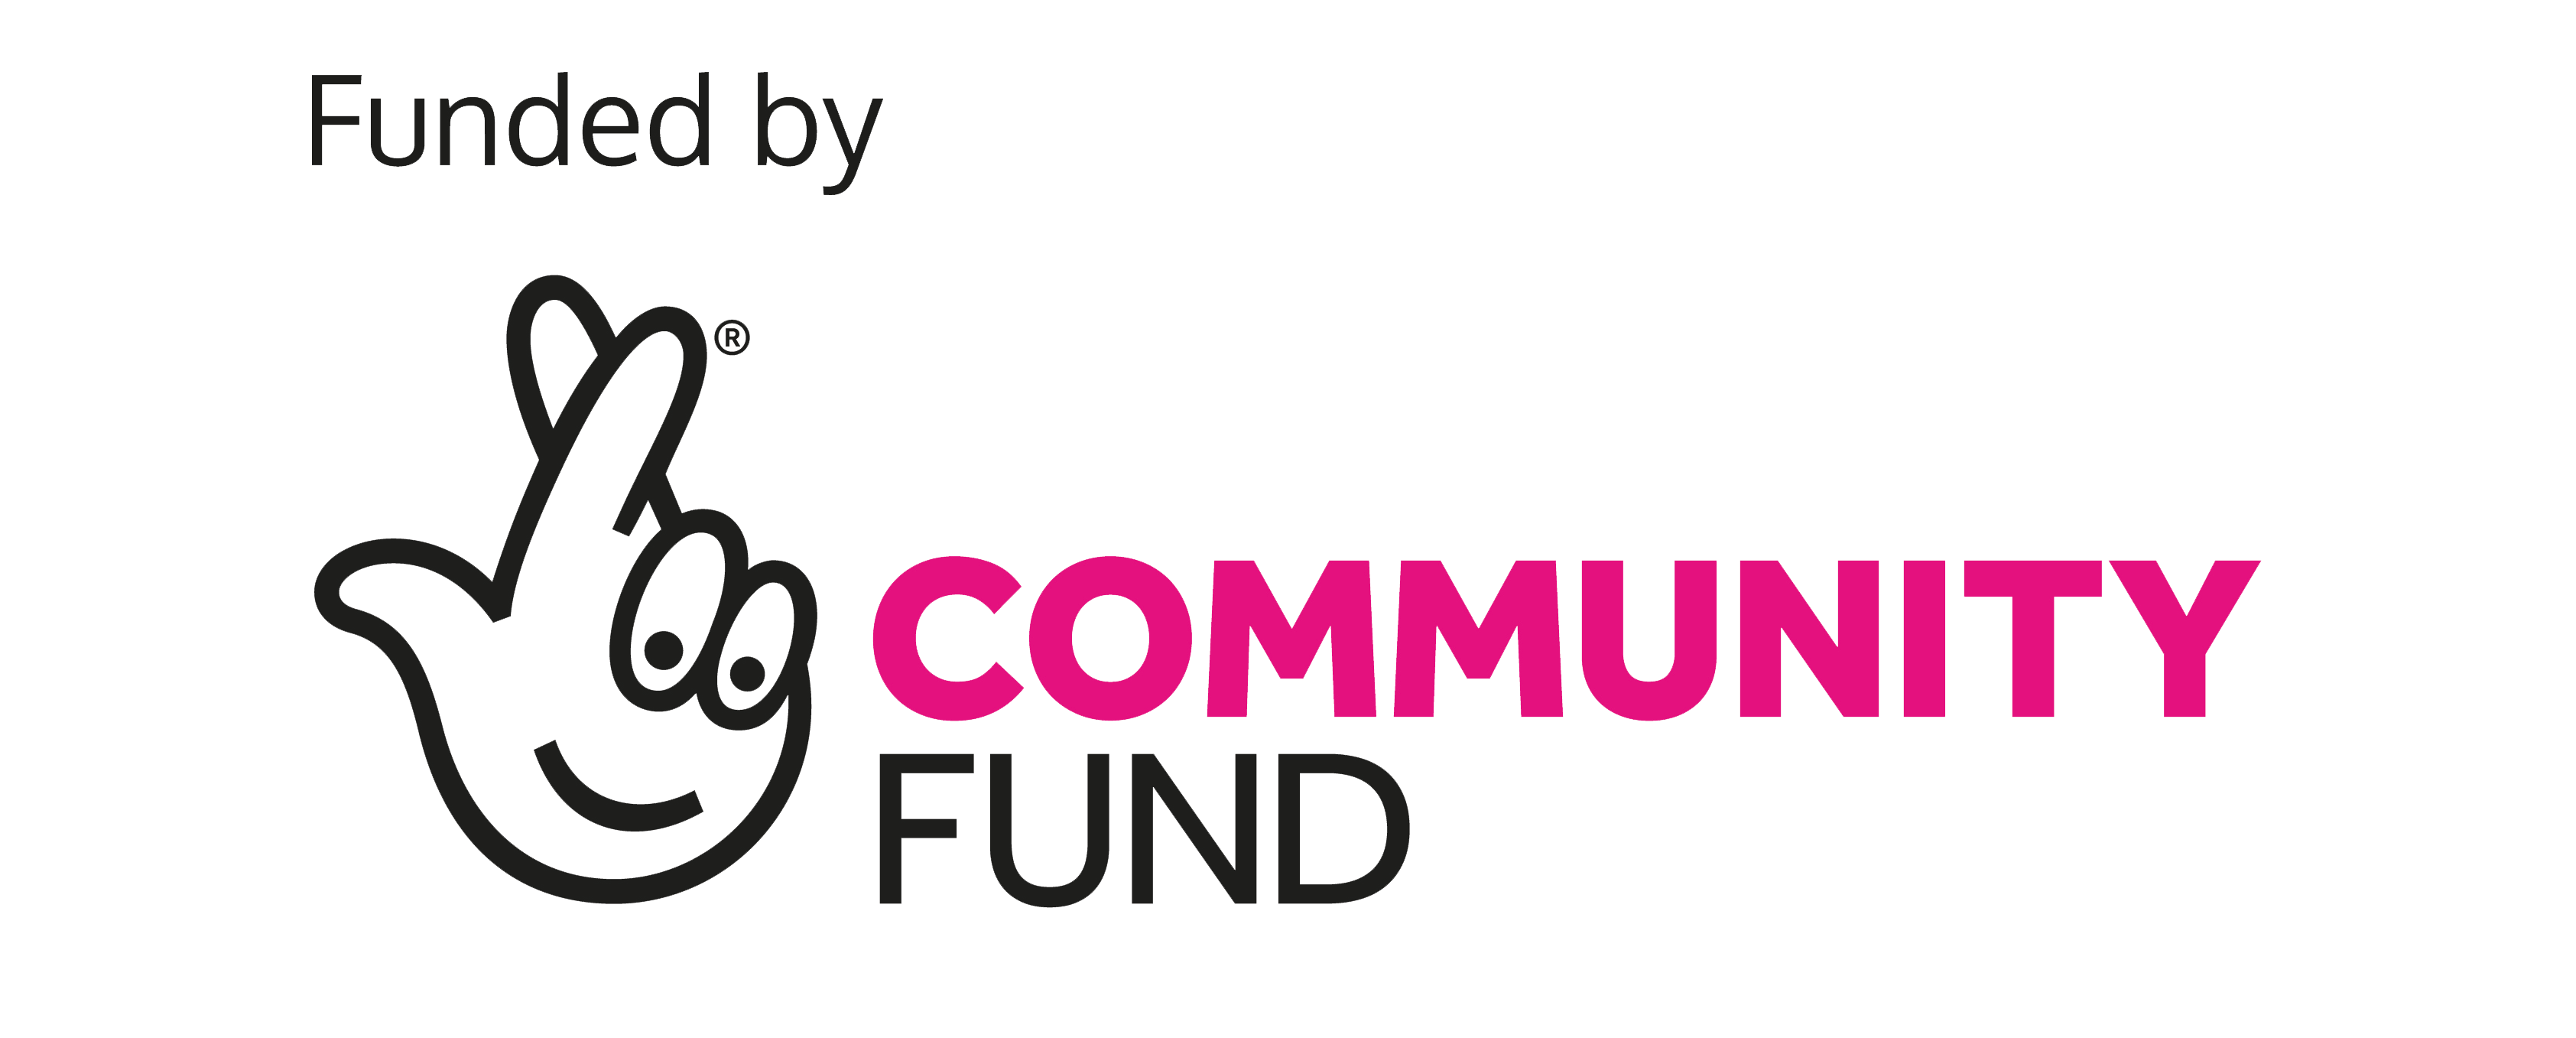 Service funded by community fund lottery logo